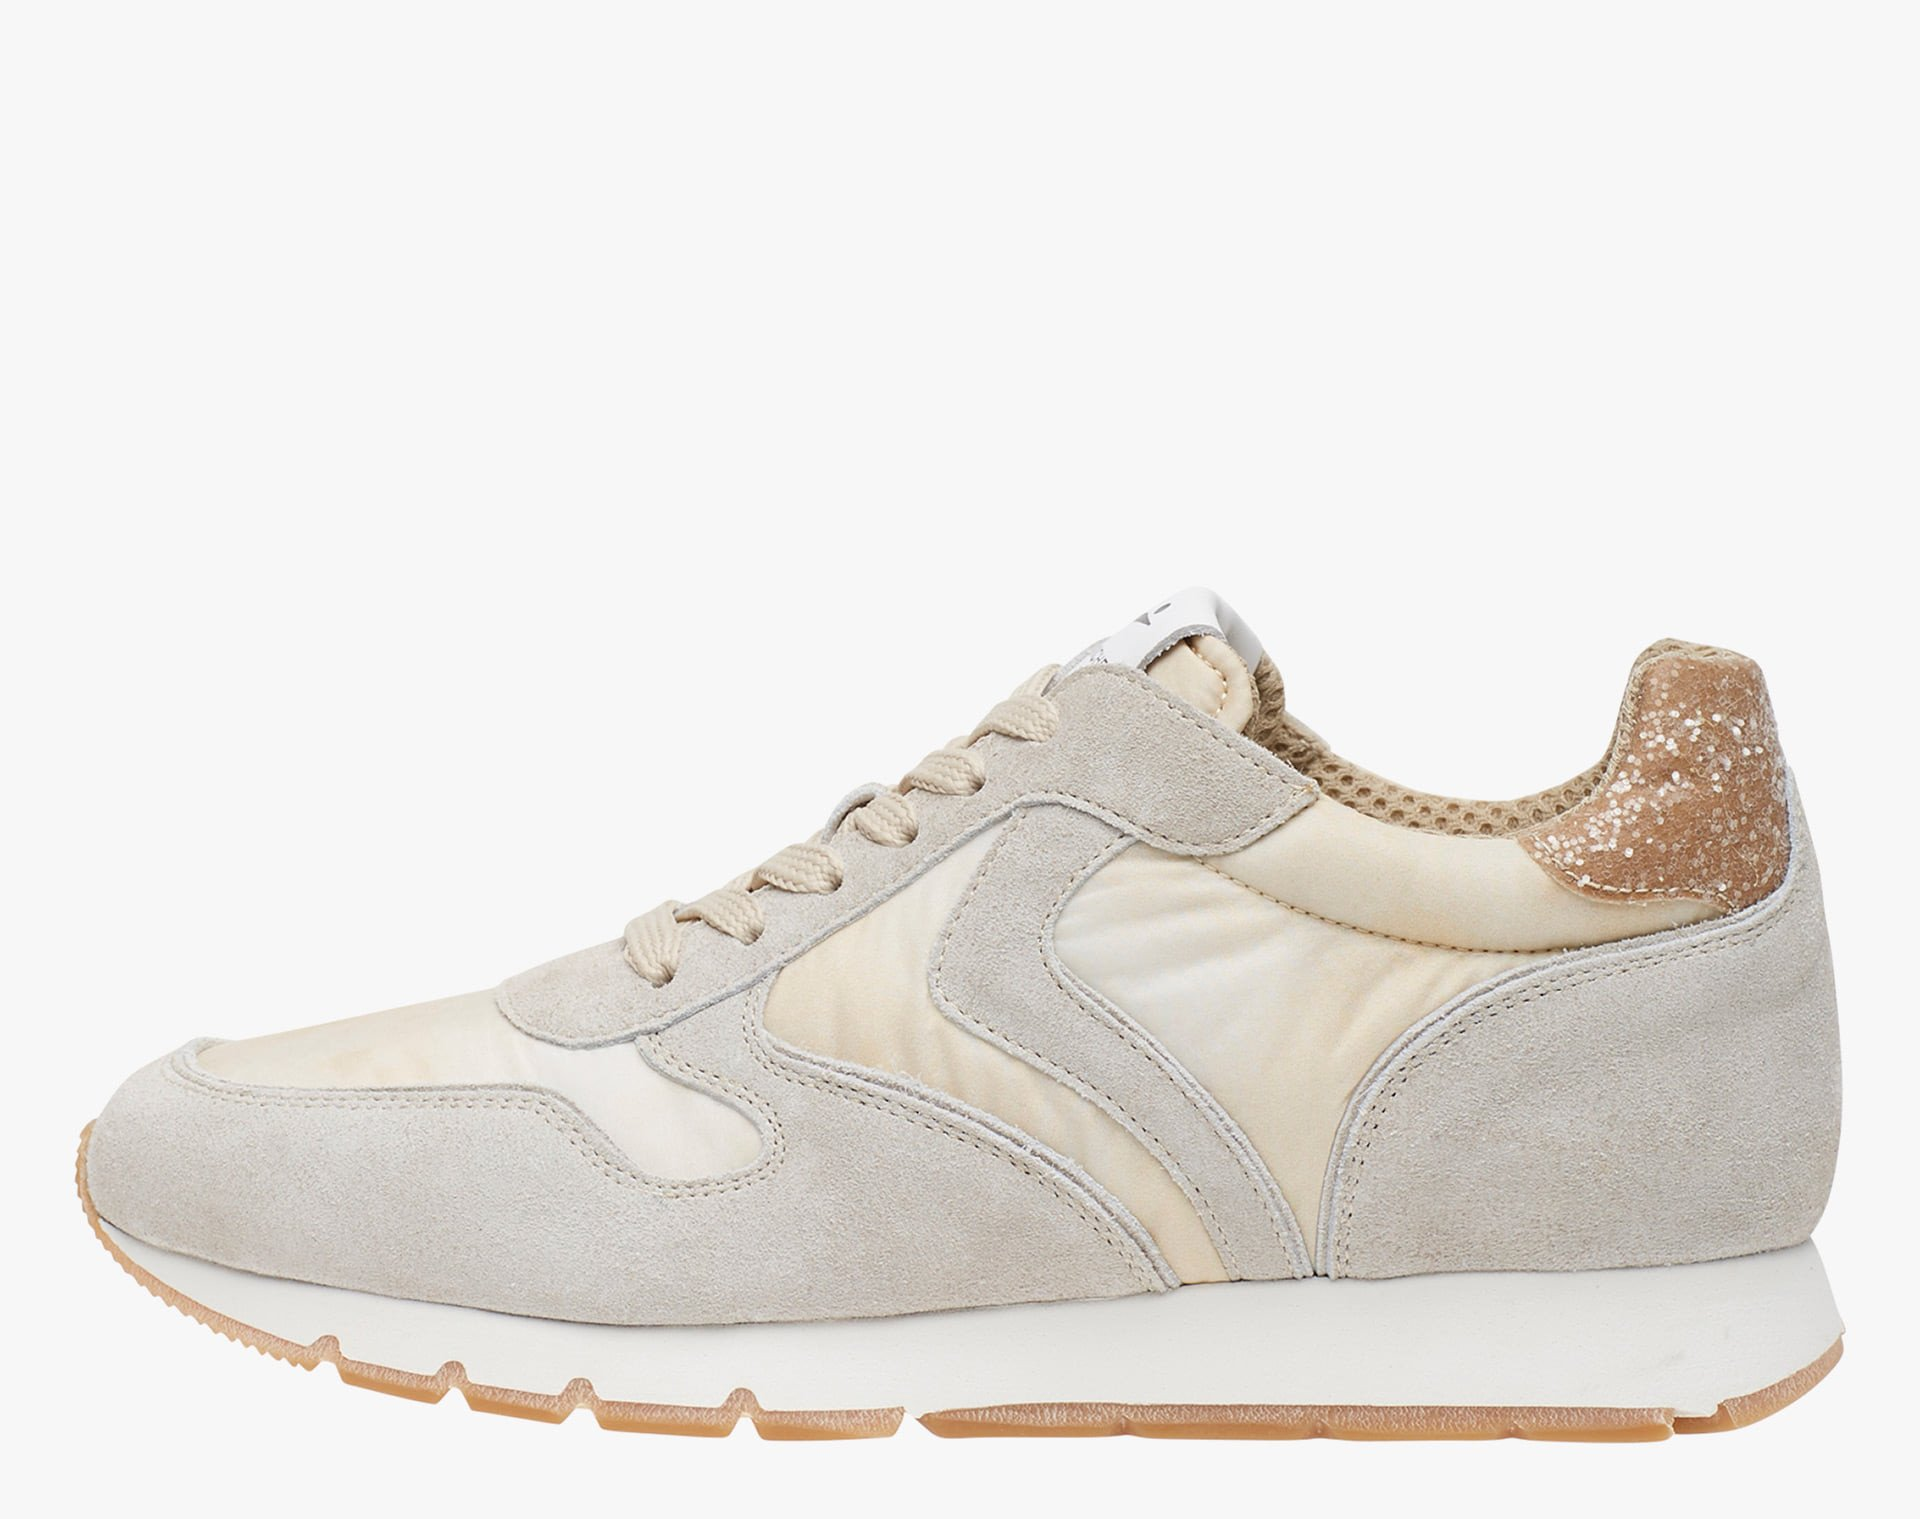 JULIA - Faded suede and technical fabric sneakers - Sand